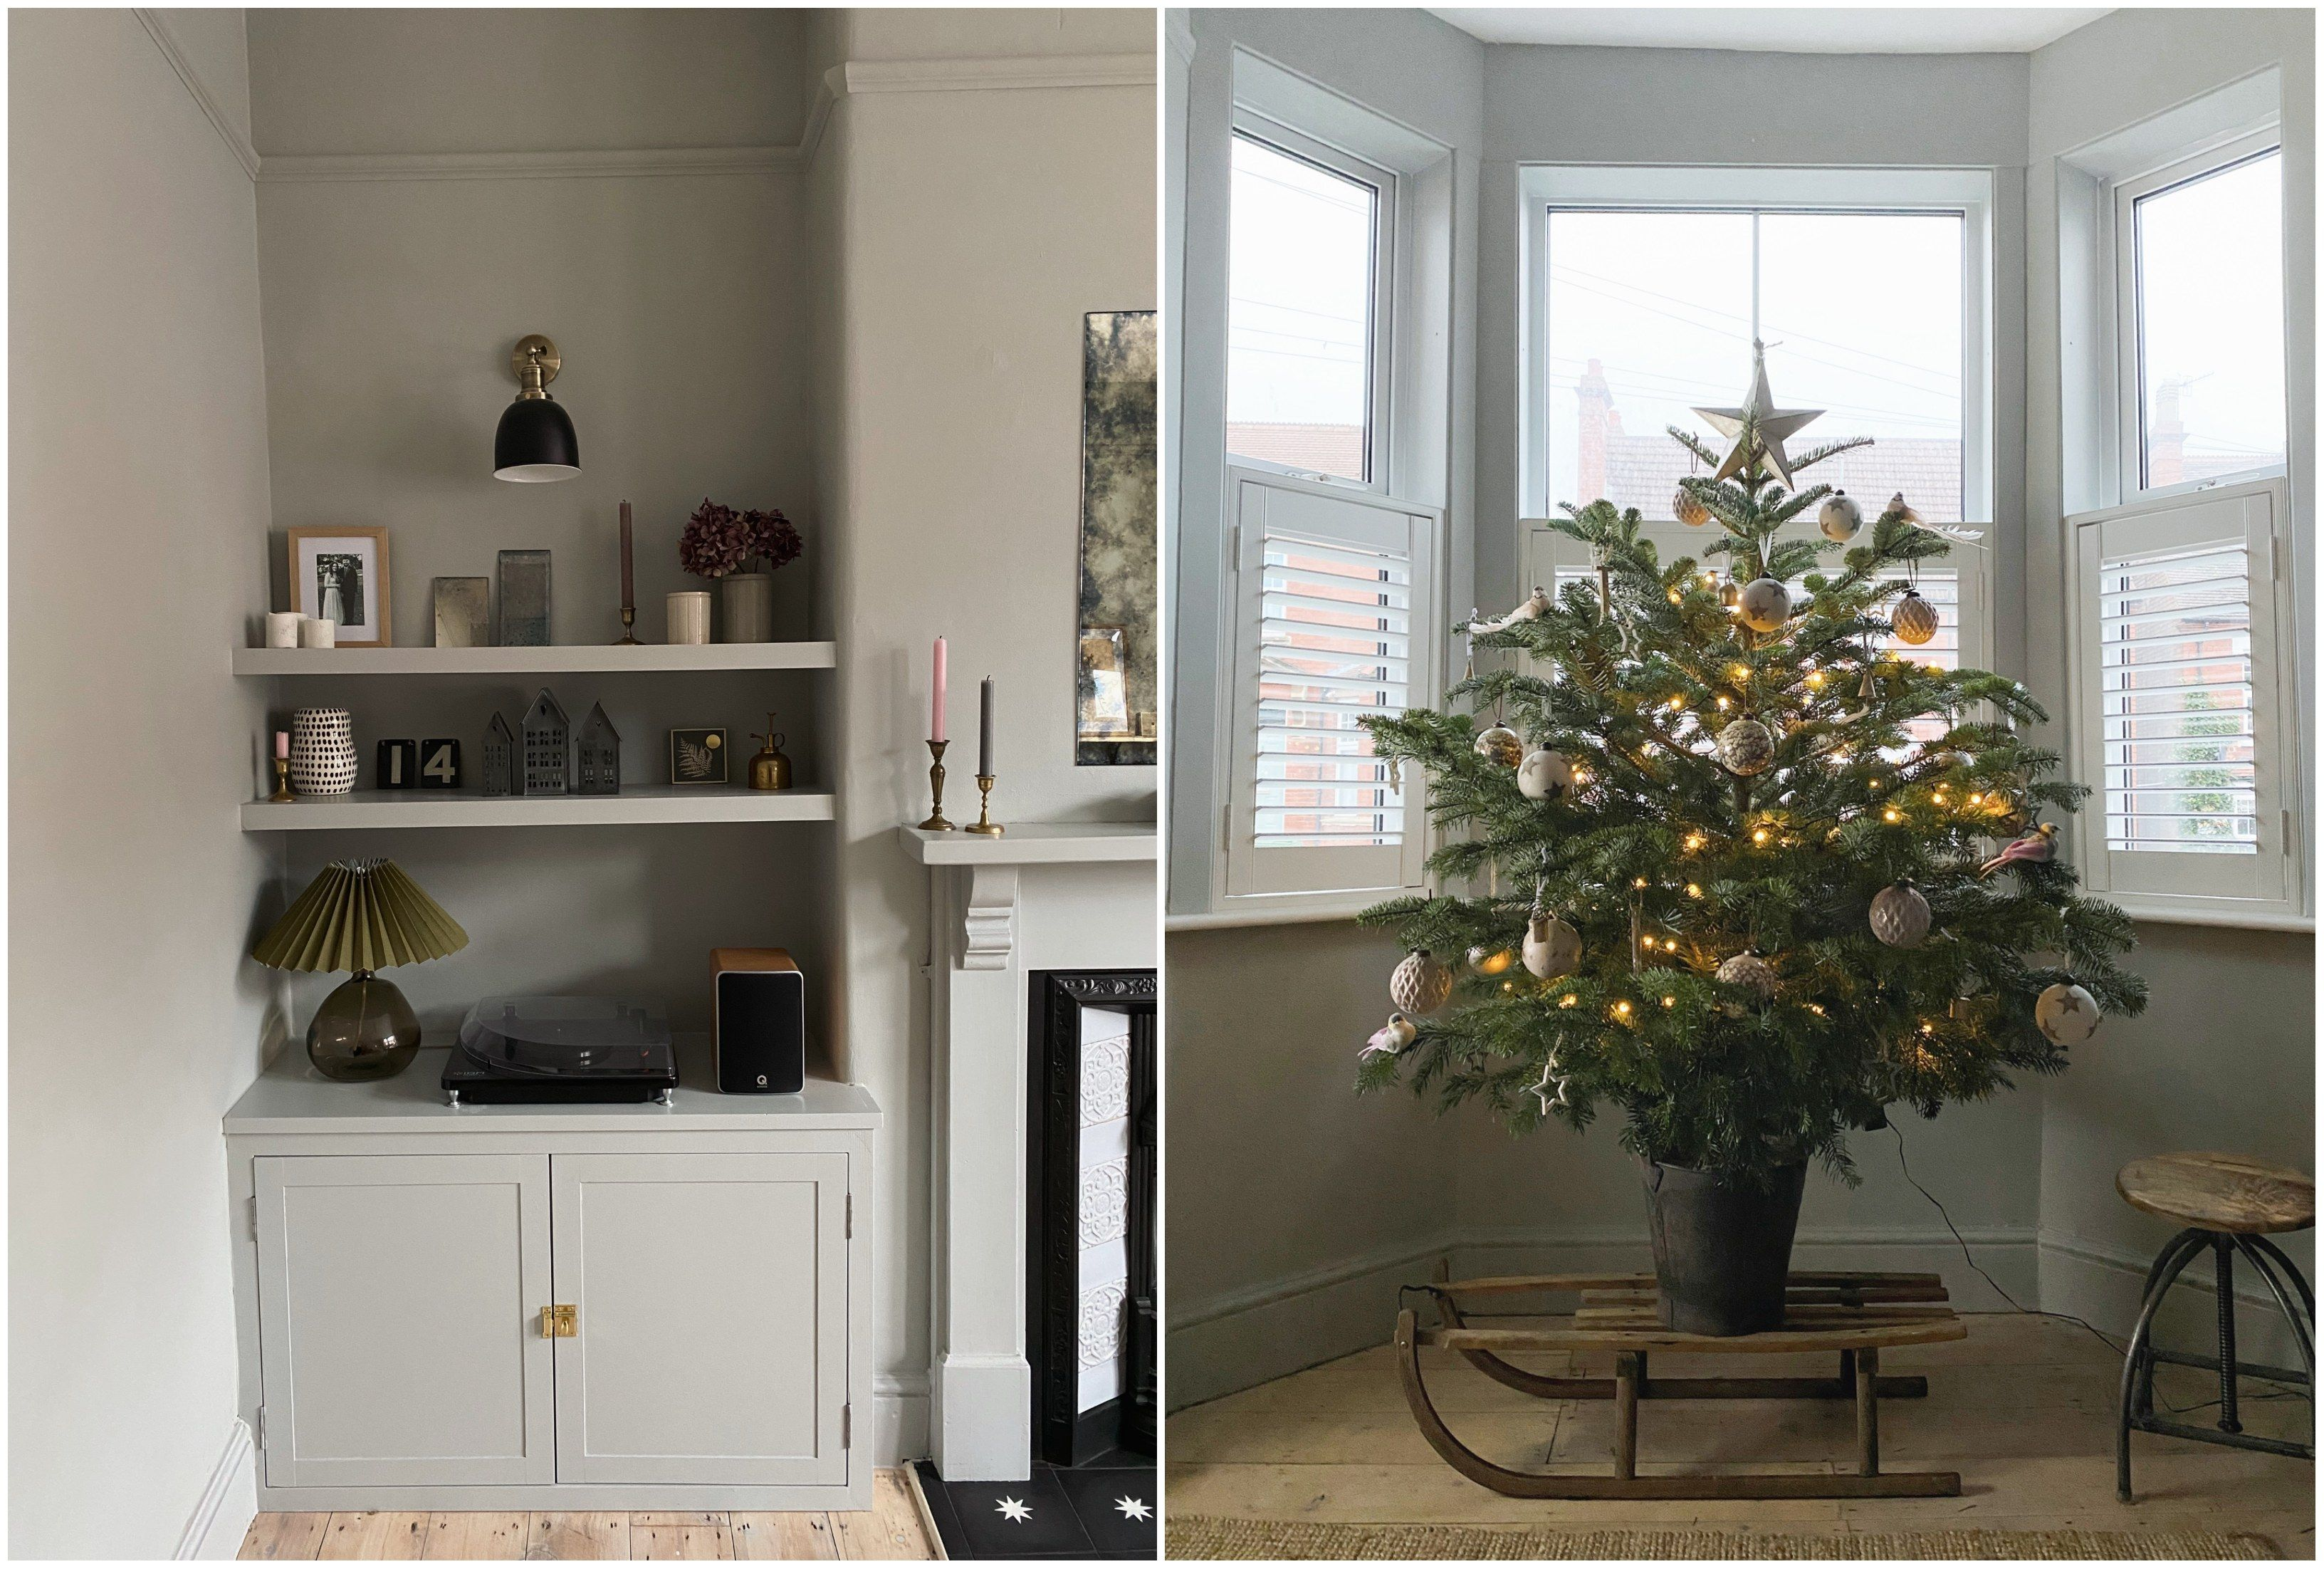 To complement her Victorian aesthetic, this Christmas Jessi has chosen a traditional tree.